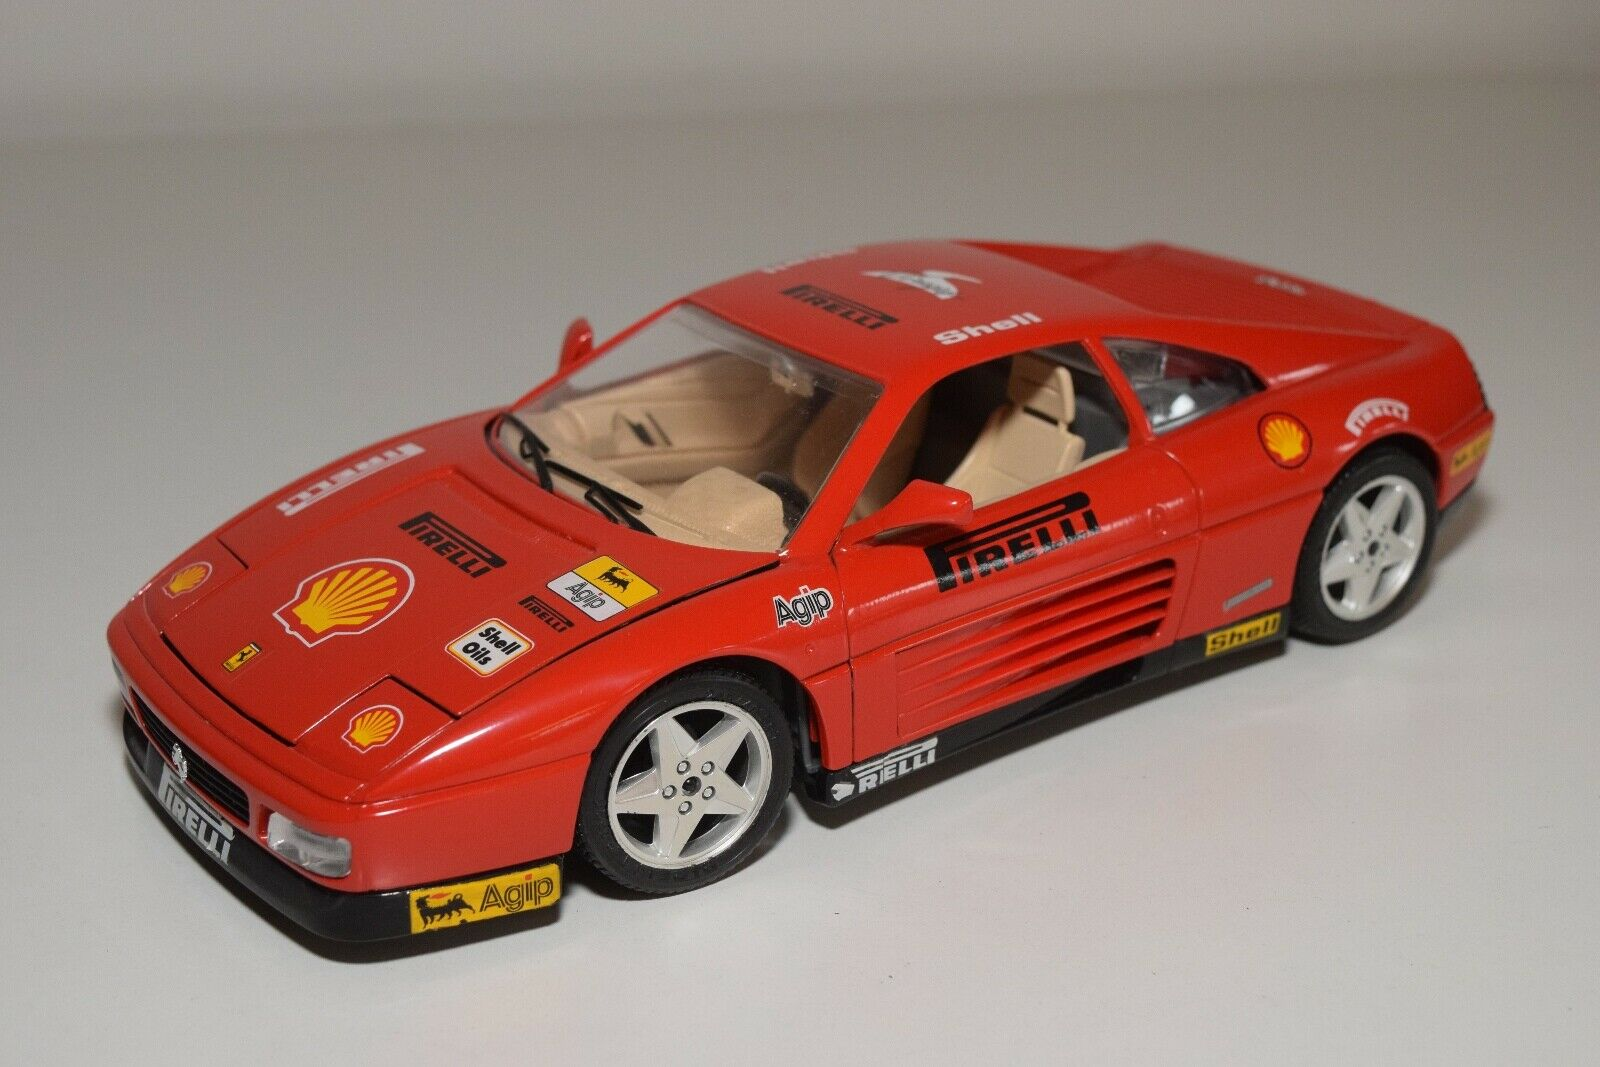 V 1 18 BBURAGO BURAGO FERRARI 348TB 348 TB 1989 VIRAGES NEAR MINT CONDITION